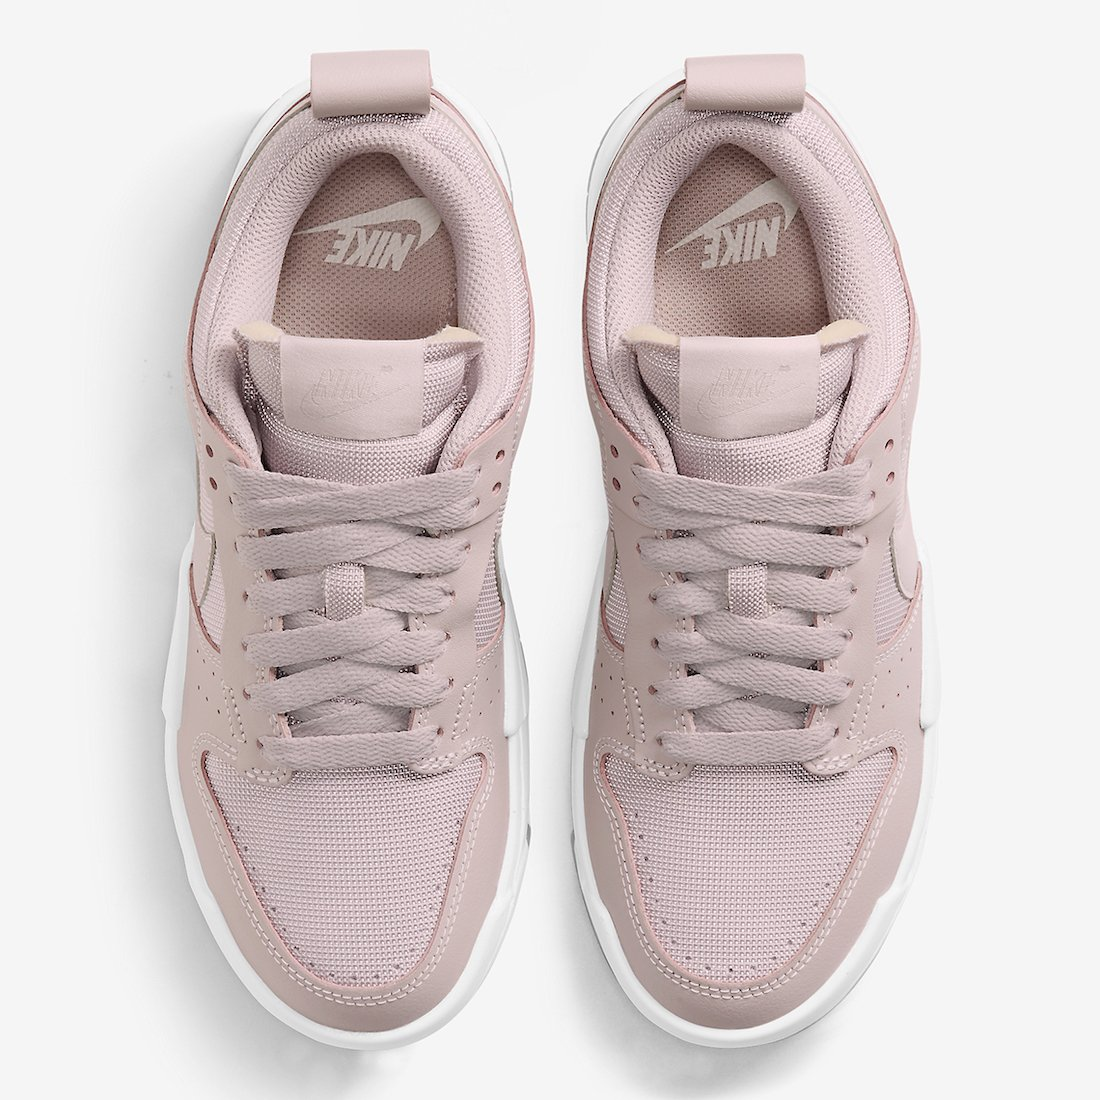 Nike Dunk Low Disrupt Dusty Pink Gum CK6654-003 Release Date Info